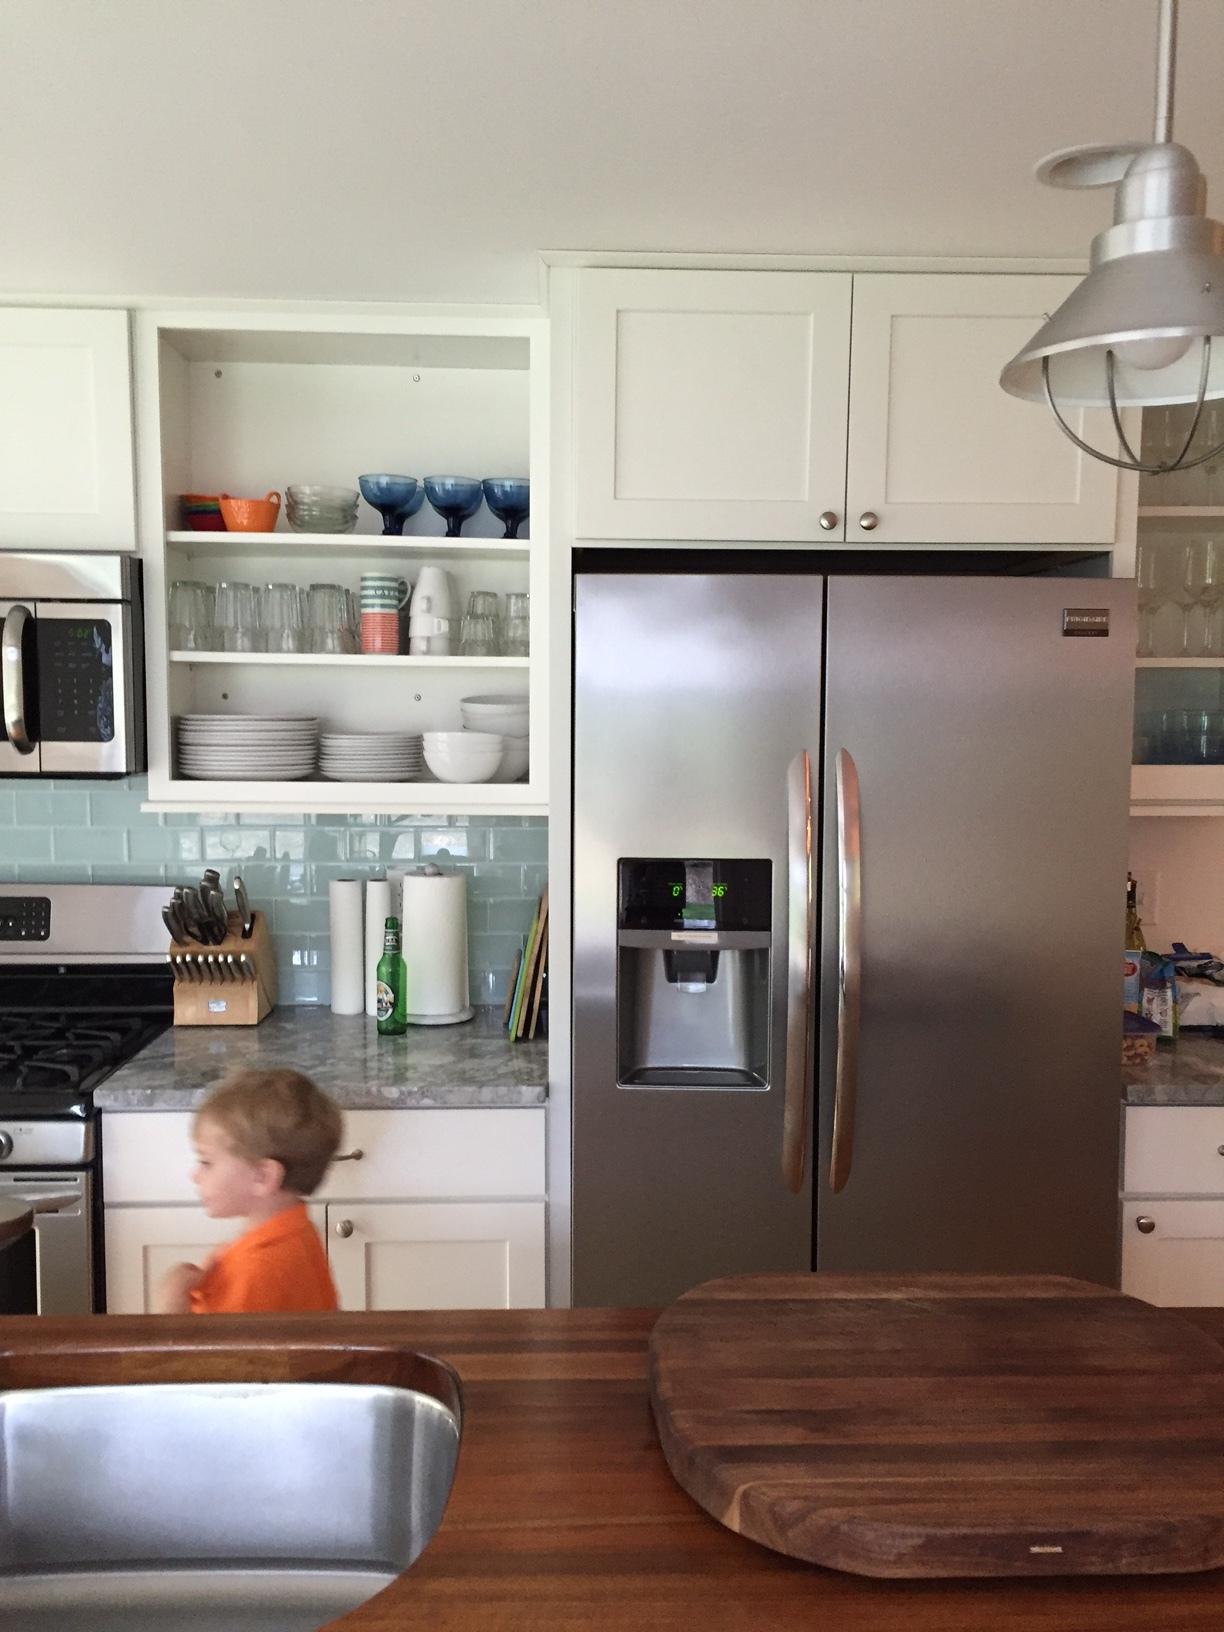 A closer view of the kitchen (don't mind Charlie or the bottle of Peroni!)